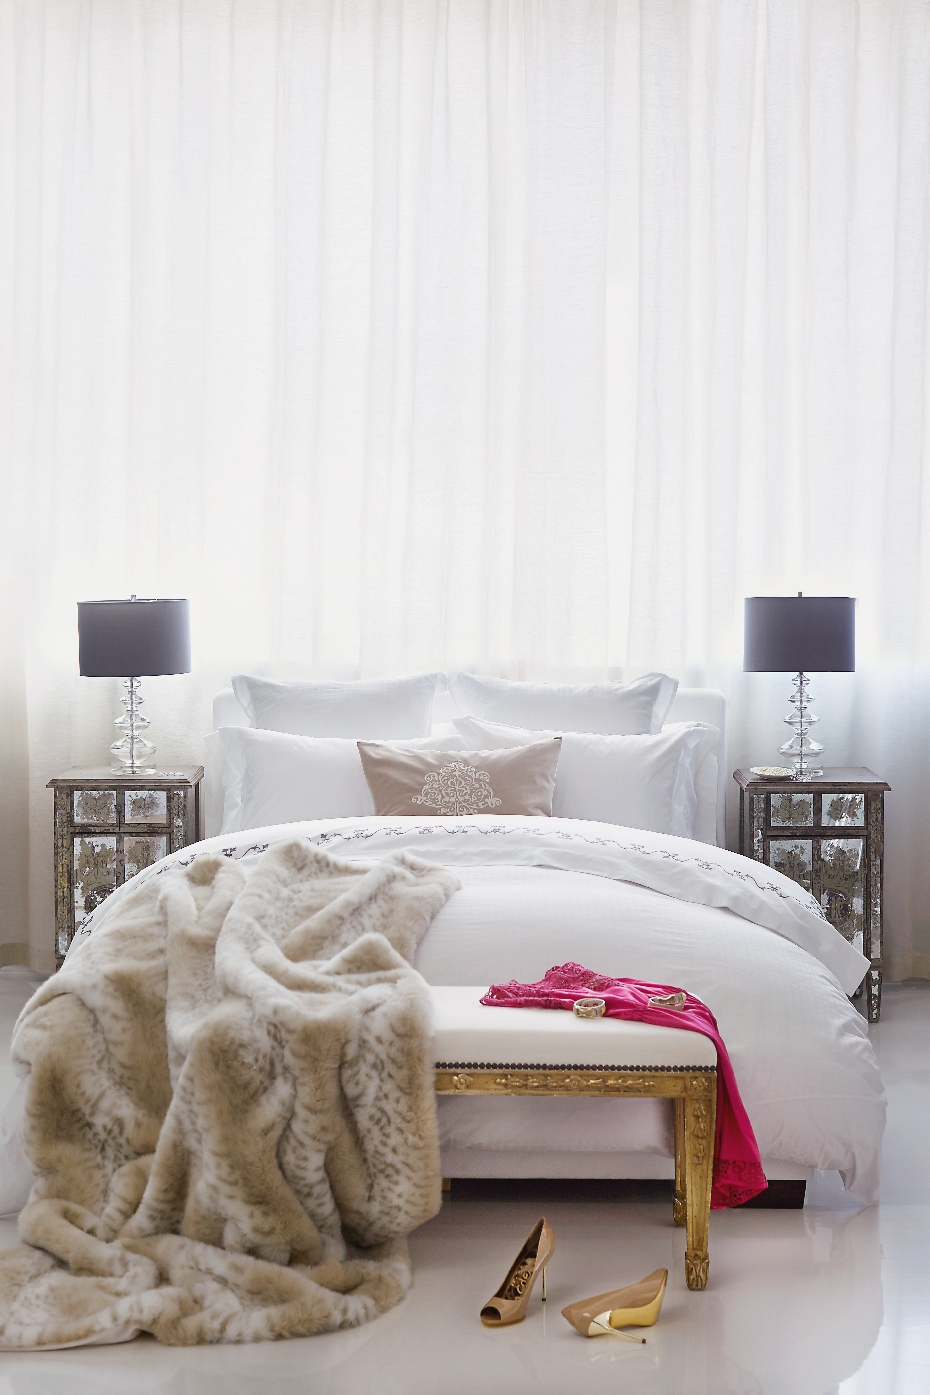 Stacey Van Berkel Photography I Glamourous bed with fur throw I Au LIt Fine Linens I Toronto, Ontario, Canada